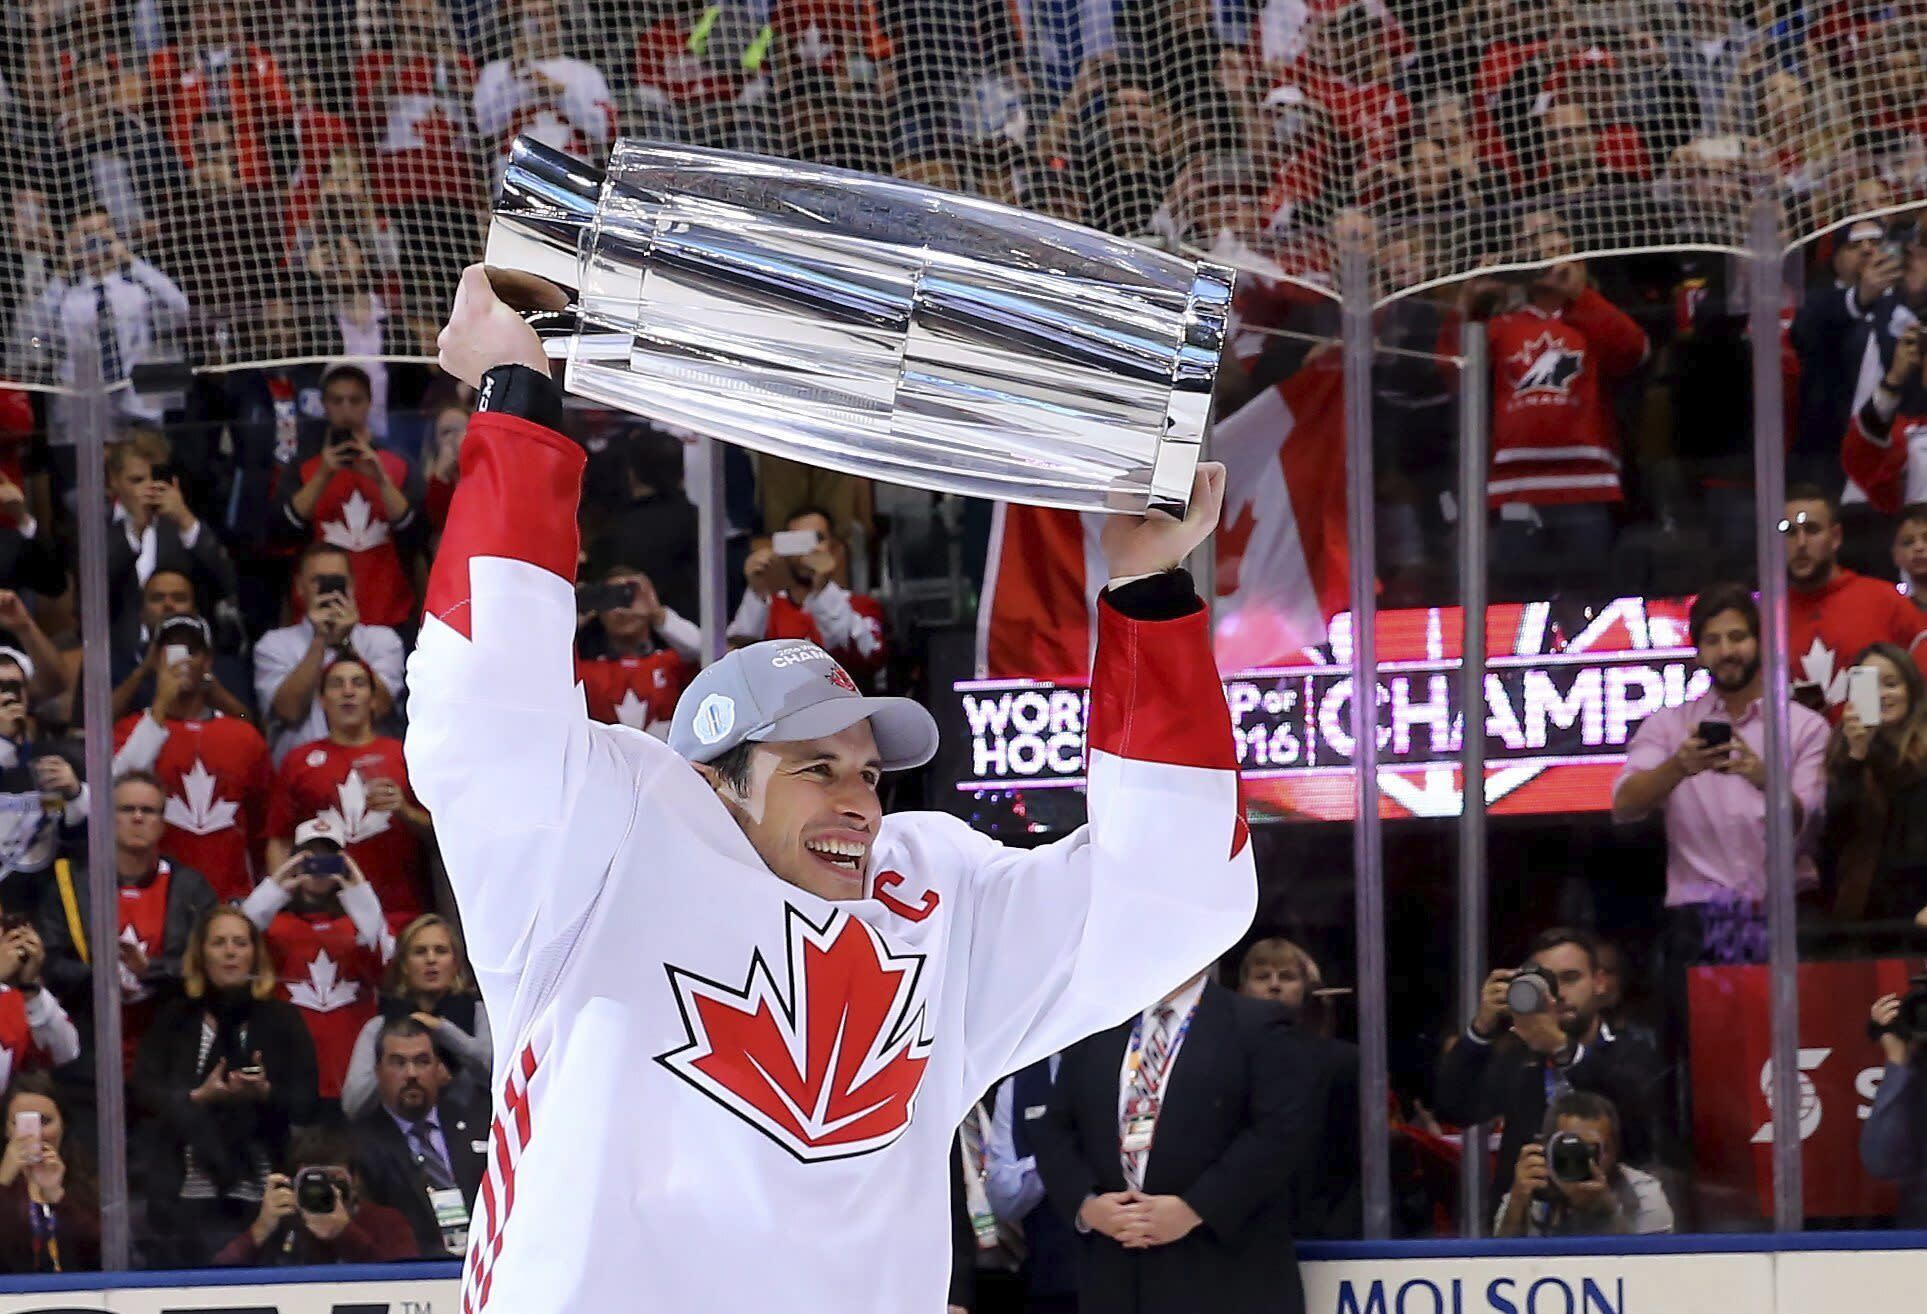 """FILE - In this Sept. 29, 2016 file photo, Canada's Sidney Crosby hoists the trophy following his team's victory over Europe in the World Cup of Hockey finals, in Toronto. The closest comparison to the NHL's summer restart is the 2016 World Cup of Hockey. Following a lengthy, unscheduled break because of a pandemic, teams have just two weeks of camp at home before traveling to Toronto or Edmonton for one exhibition game ahead of real competition.""""It's very similar to that,"""" Crosby said. """"You kind of have a short, abbreviated training camp and then you're right into it. You've got to be ready, but you also have to understand that you've just got to get better with every game."""" (Bruce Bennett/Pool Photo via AP, File)"""